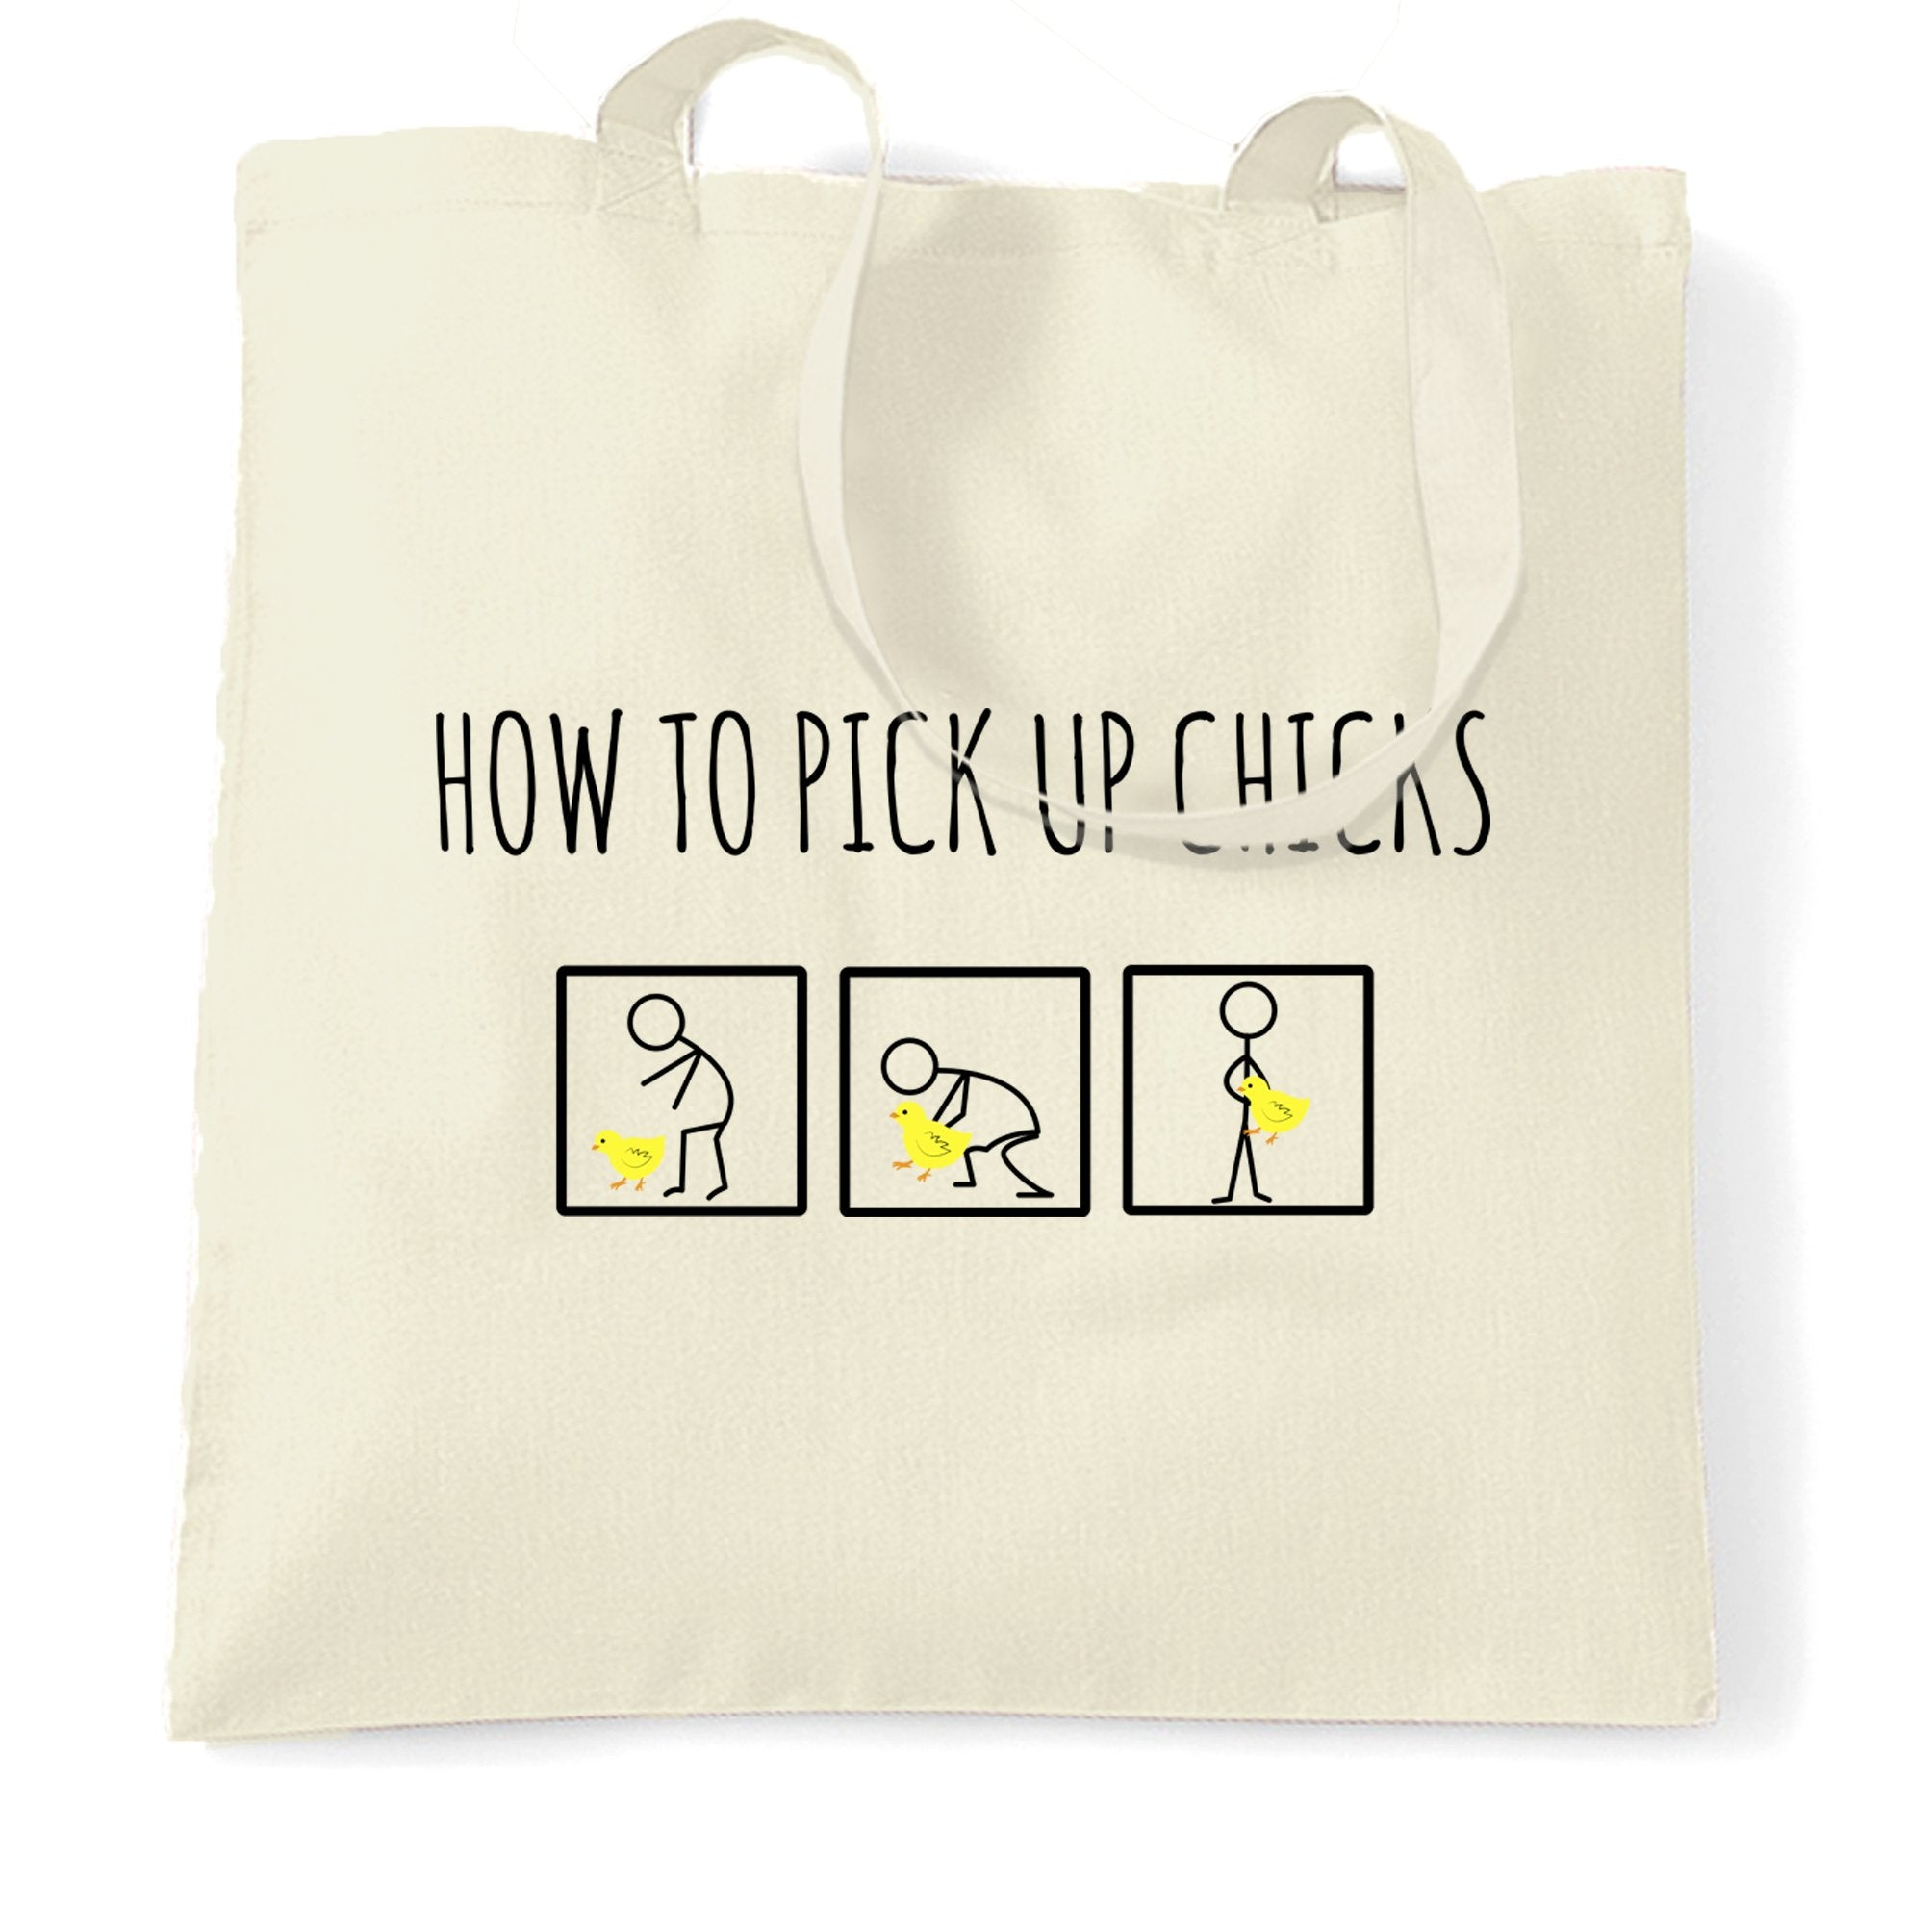 Novelty Tote Bag How To Pick Up Chicks Pun Joke